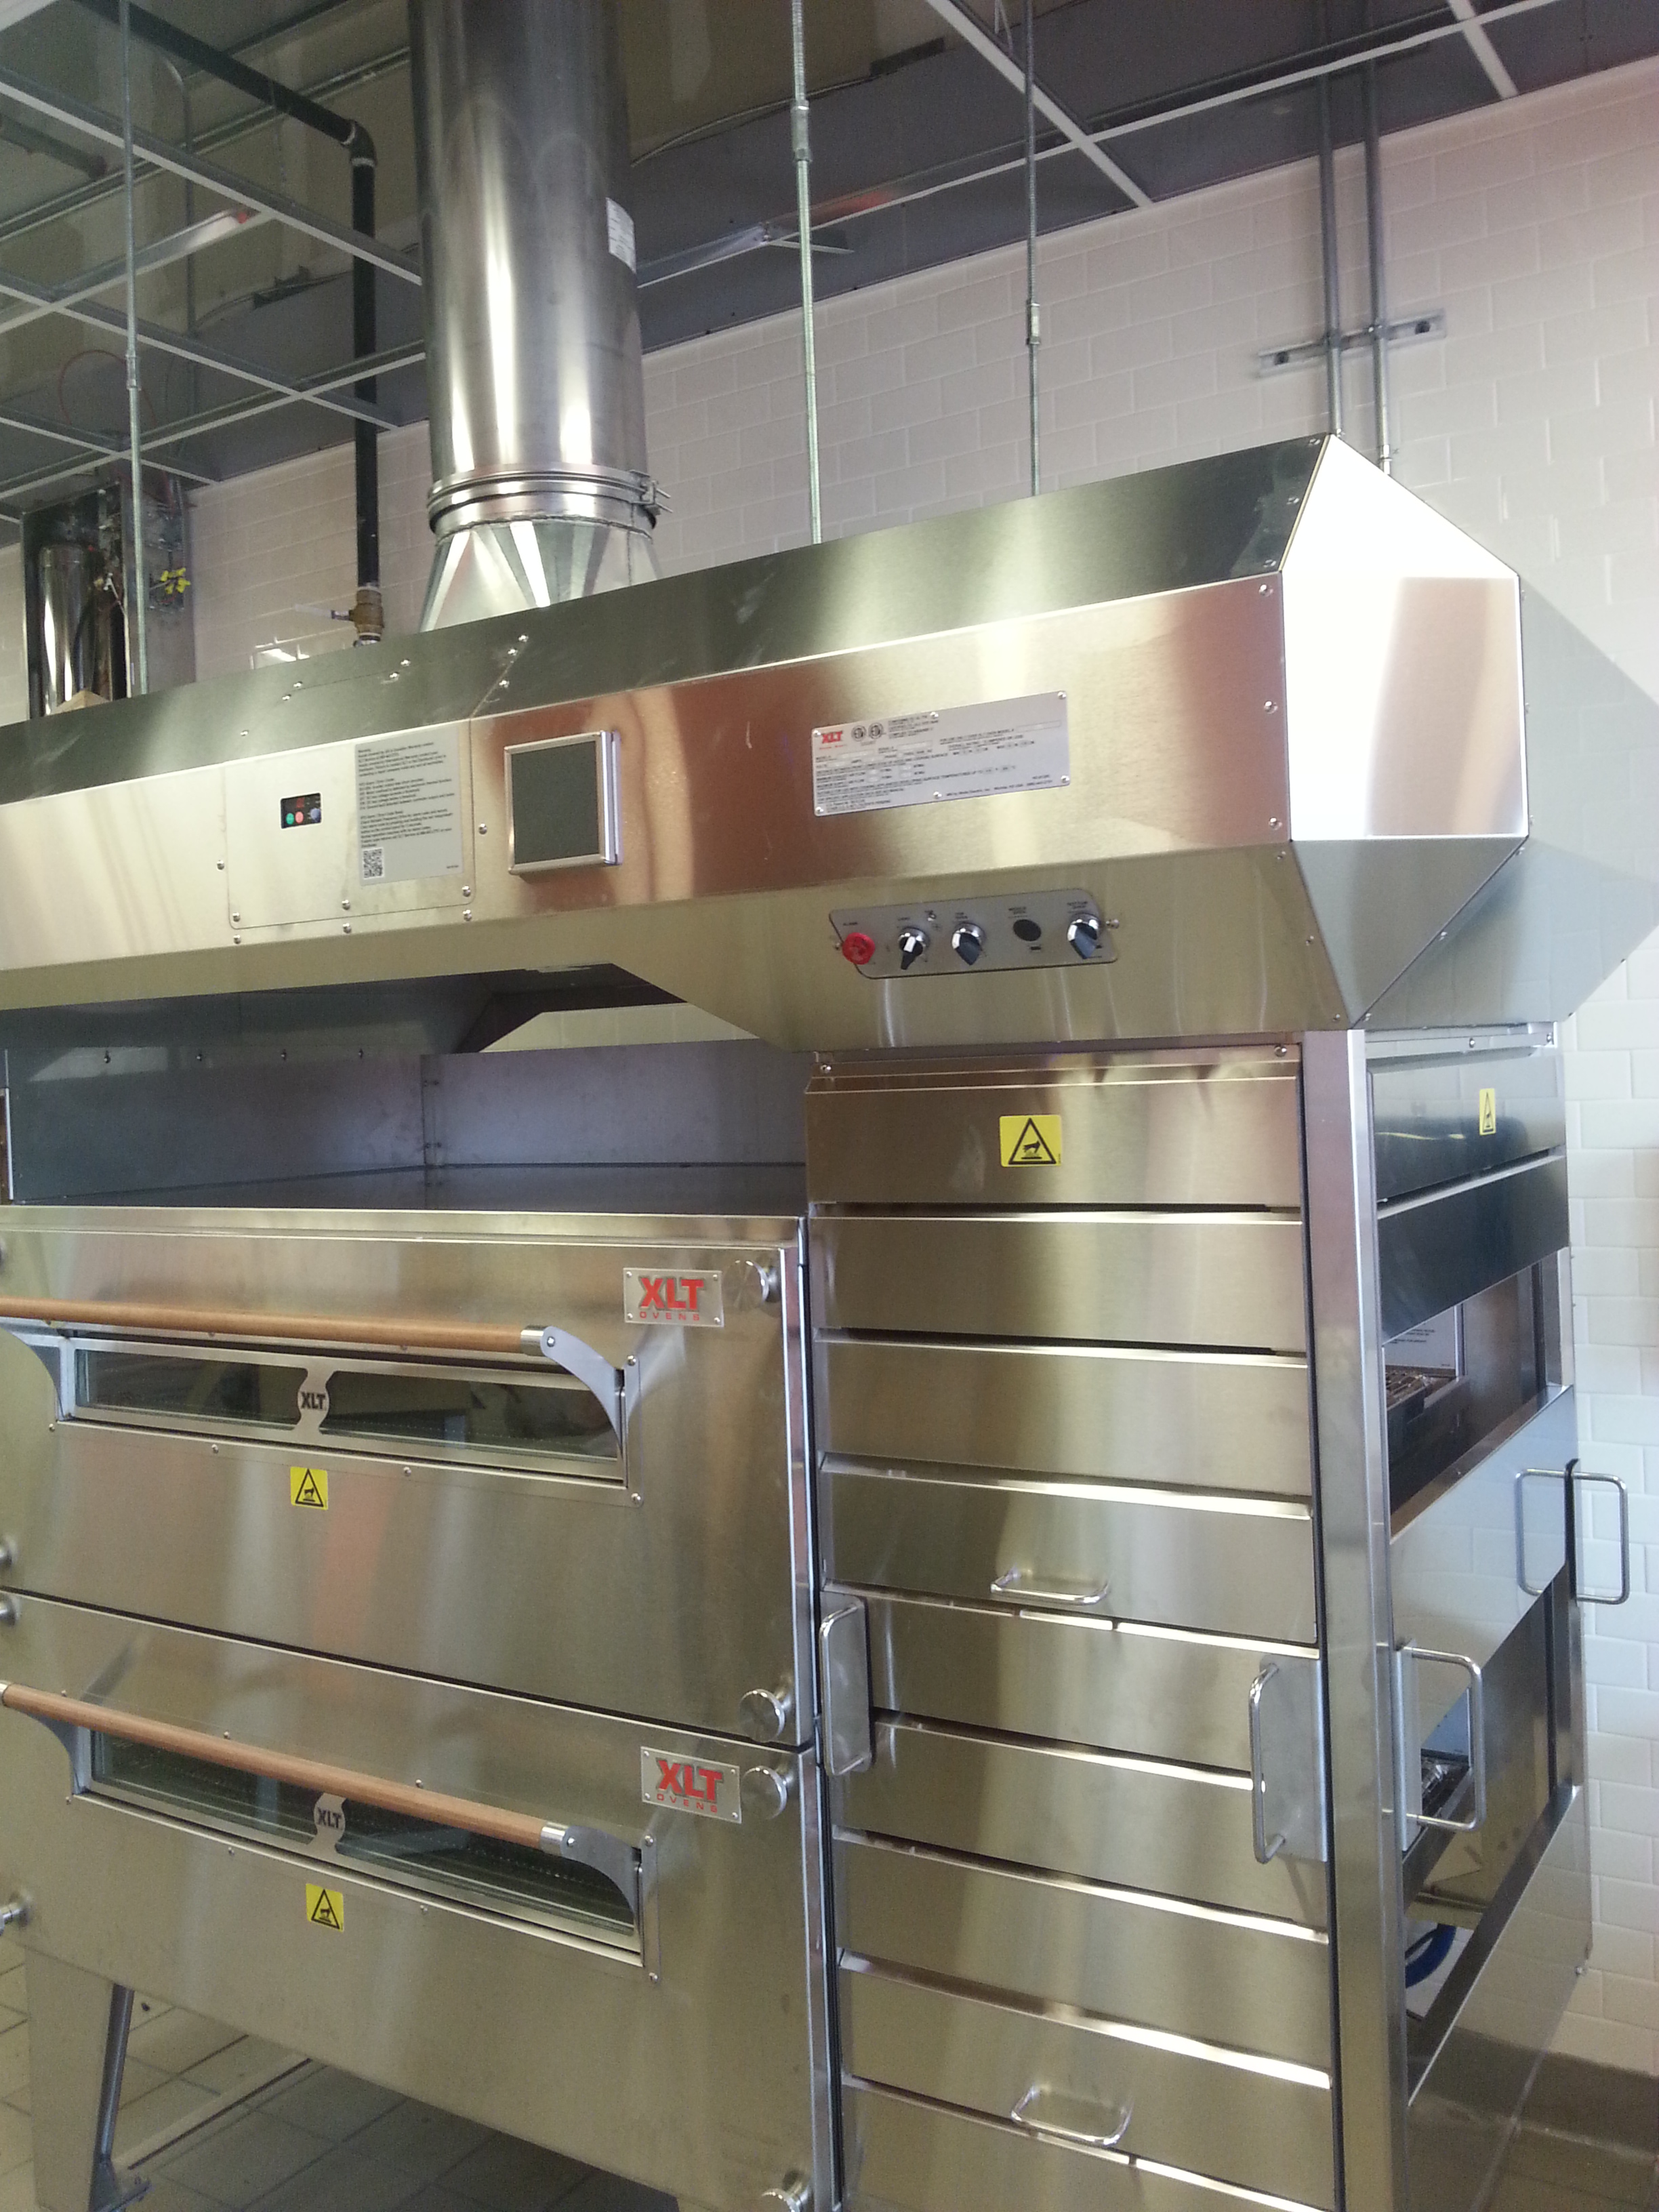 Dominos New Smyrna Beach - New Exhaust Hood and ovens